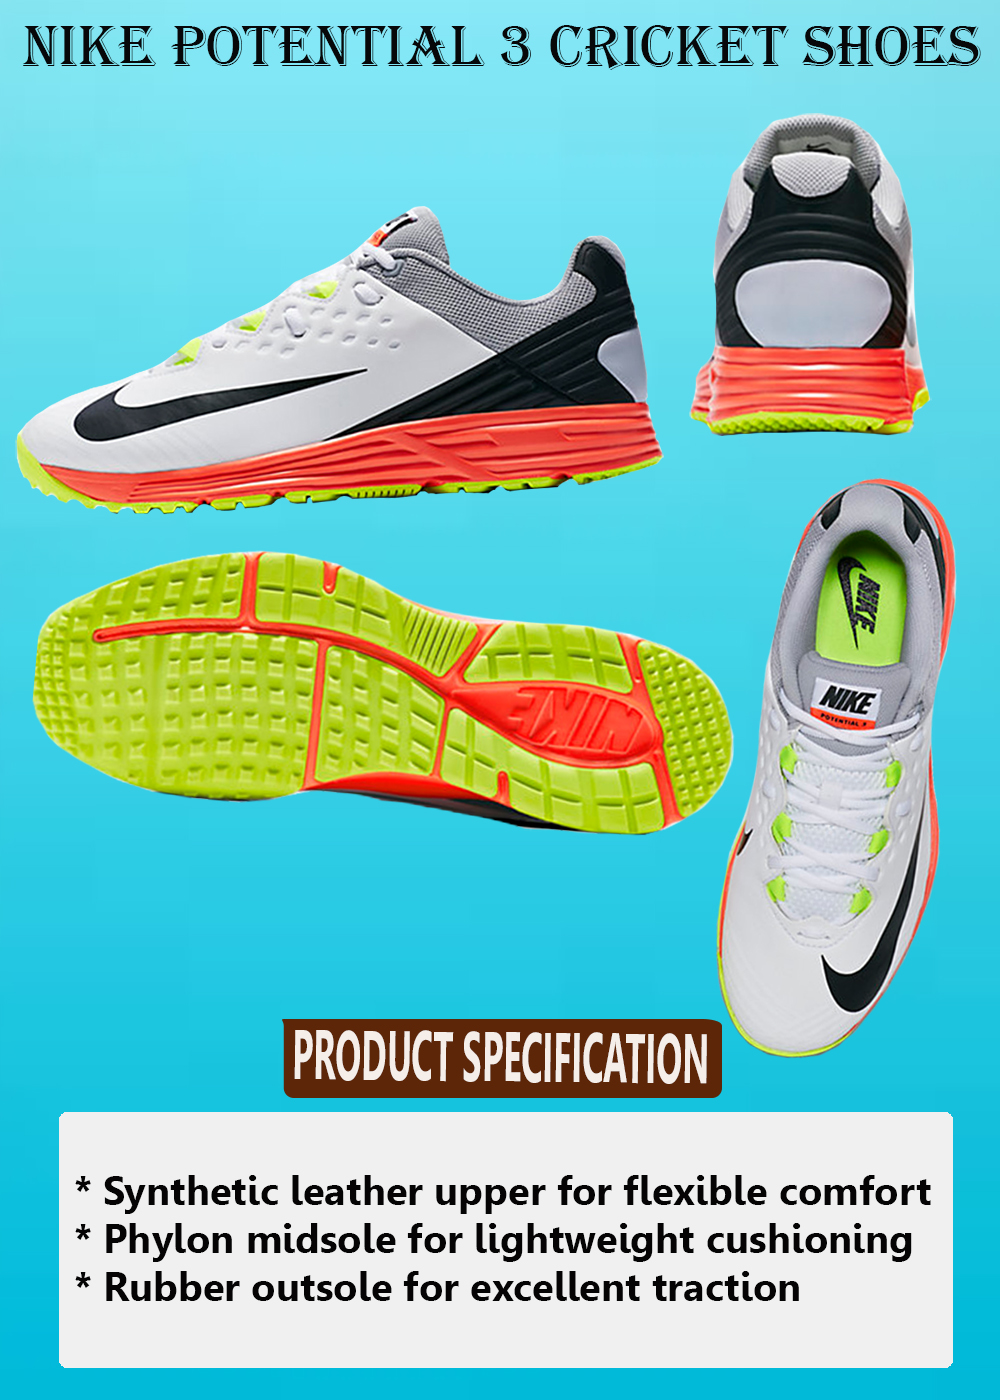 NIKE POTENTIAL 3 CRICKET SHOES_4